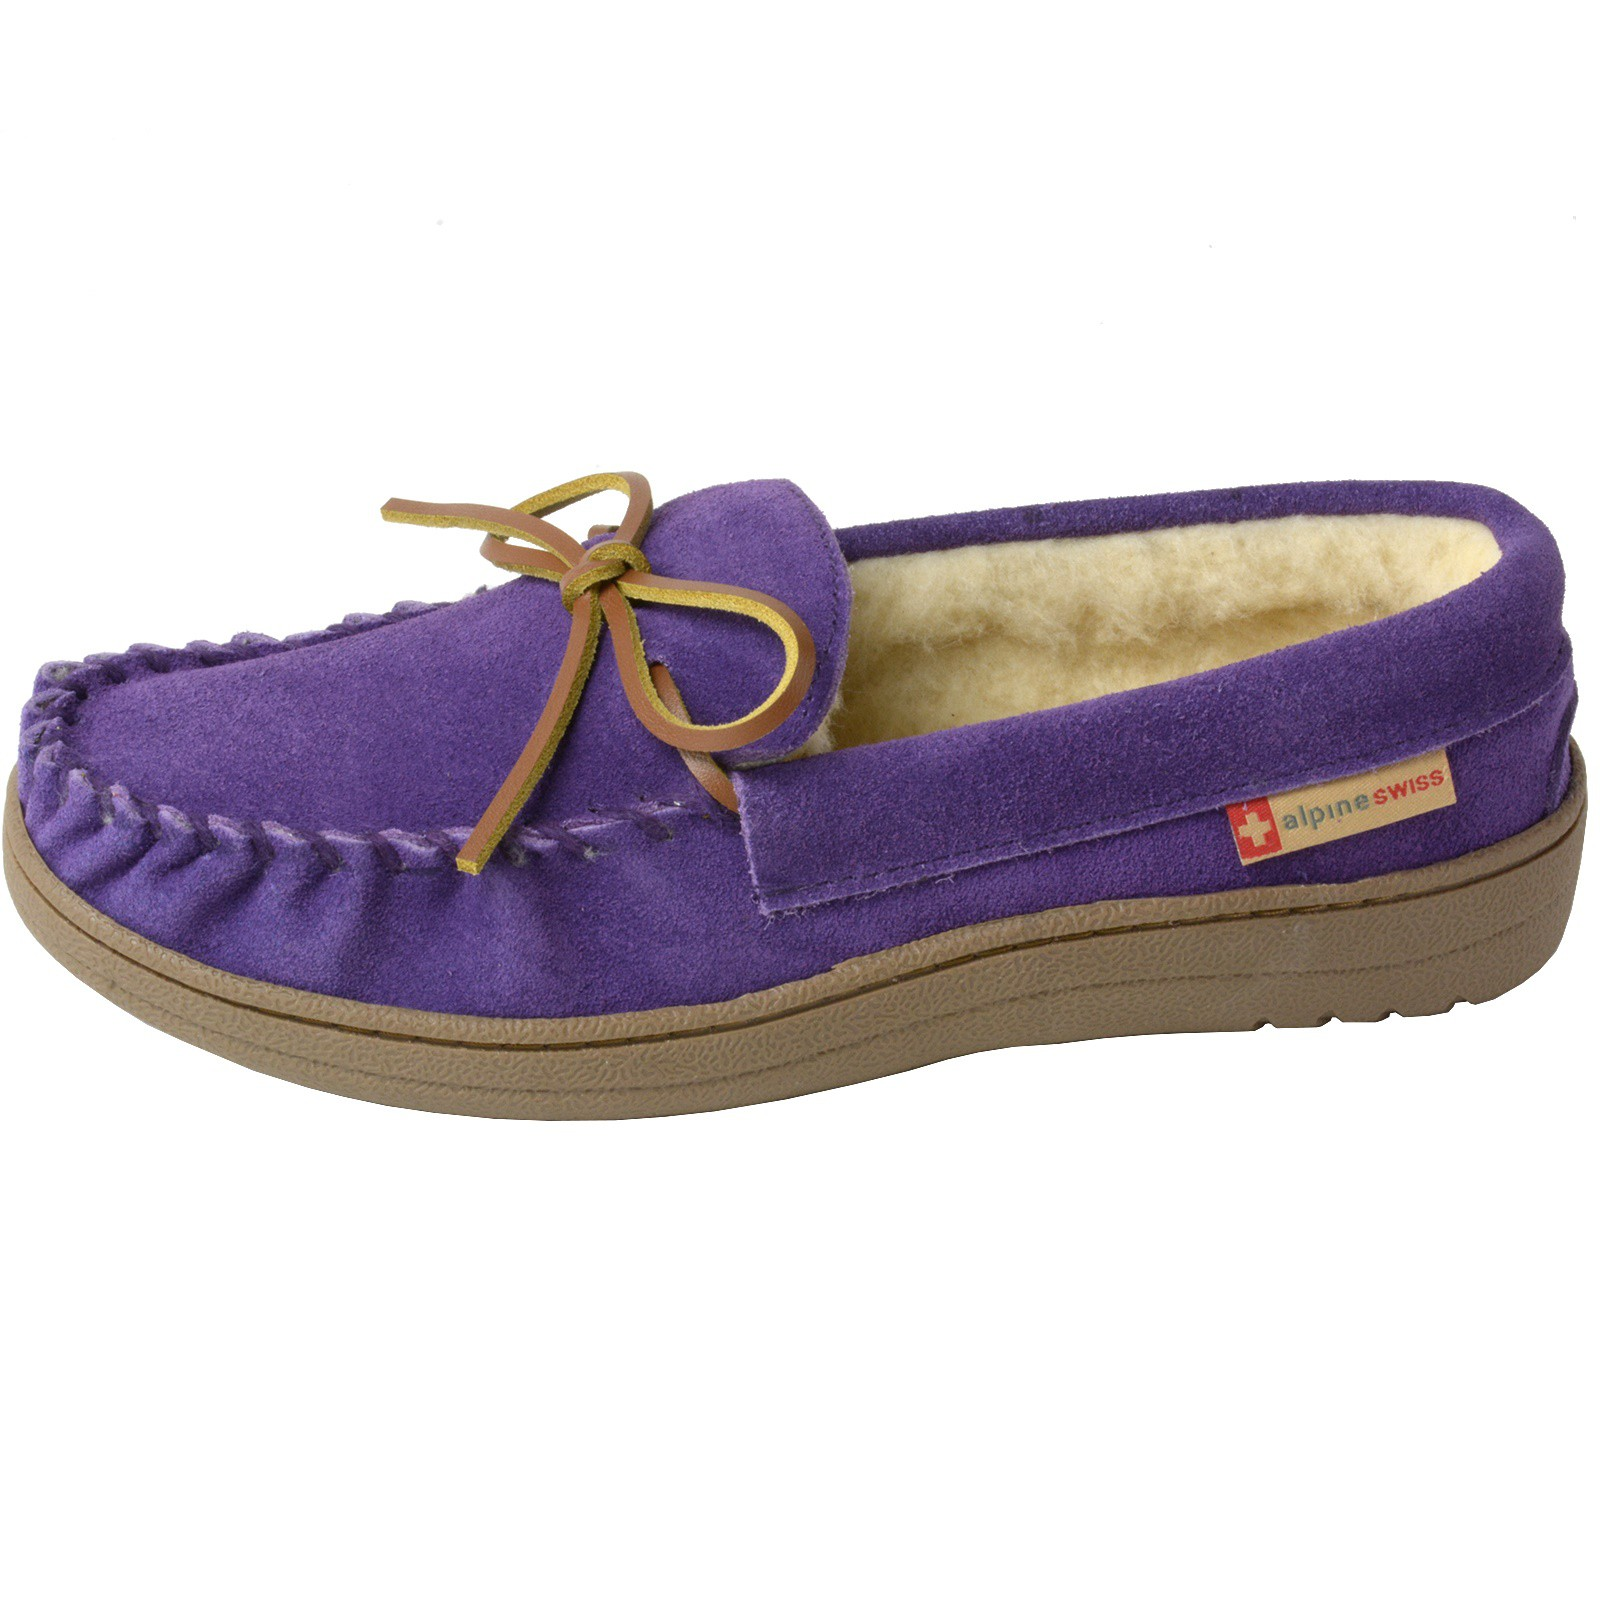 Alpine-Swiss-Sabine-Womens-Suede-Shearling-Moccasin-Slippers-House-Shoes-Slip-On miniature 34